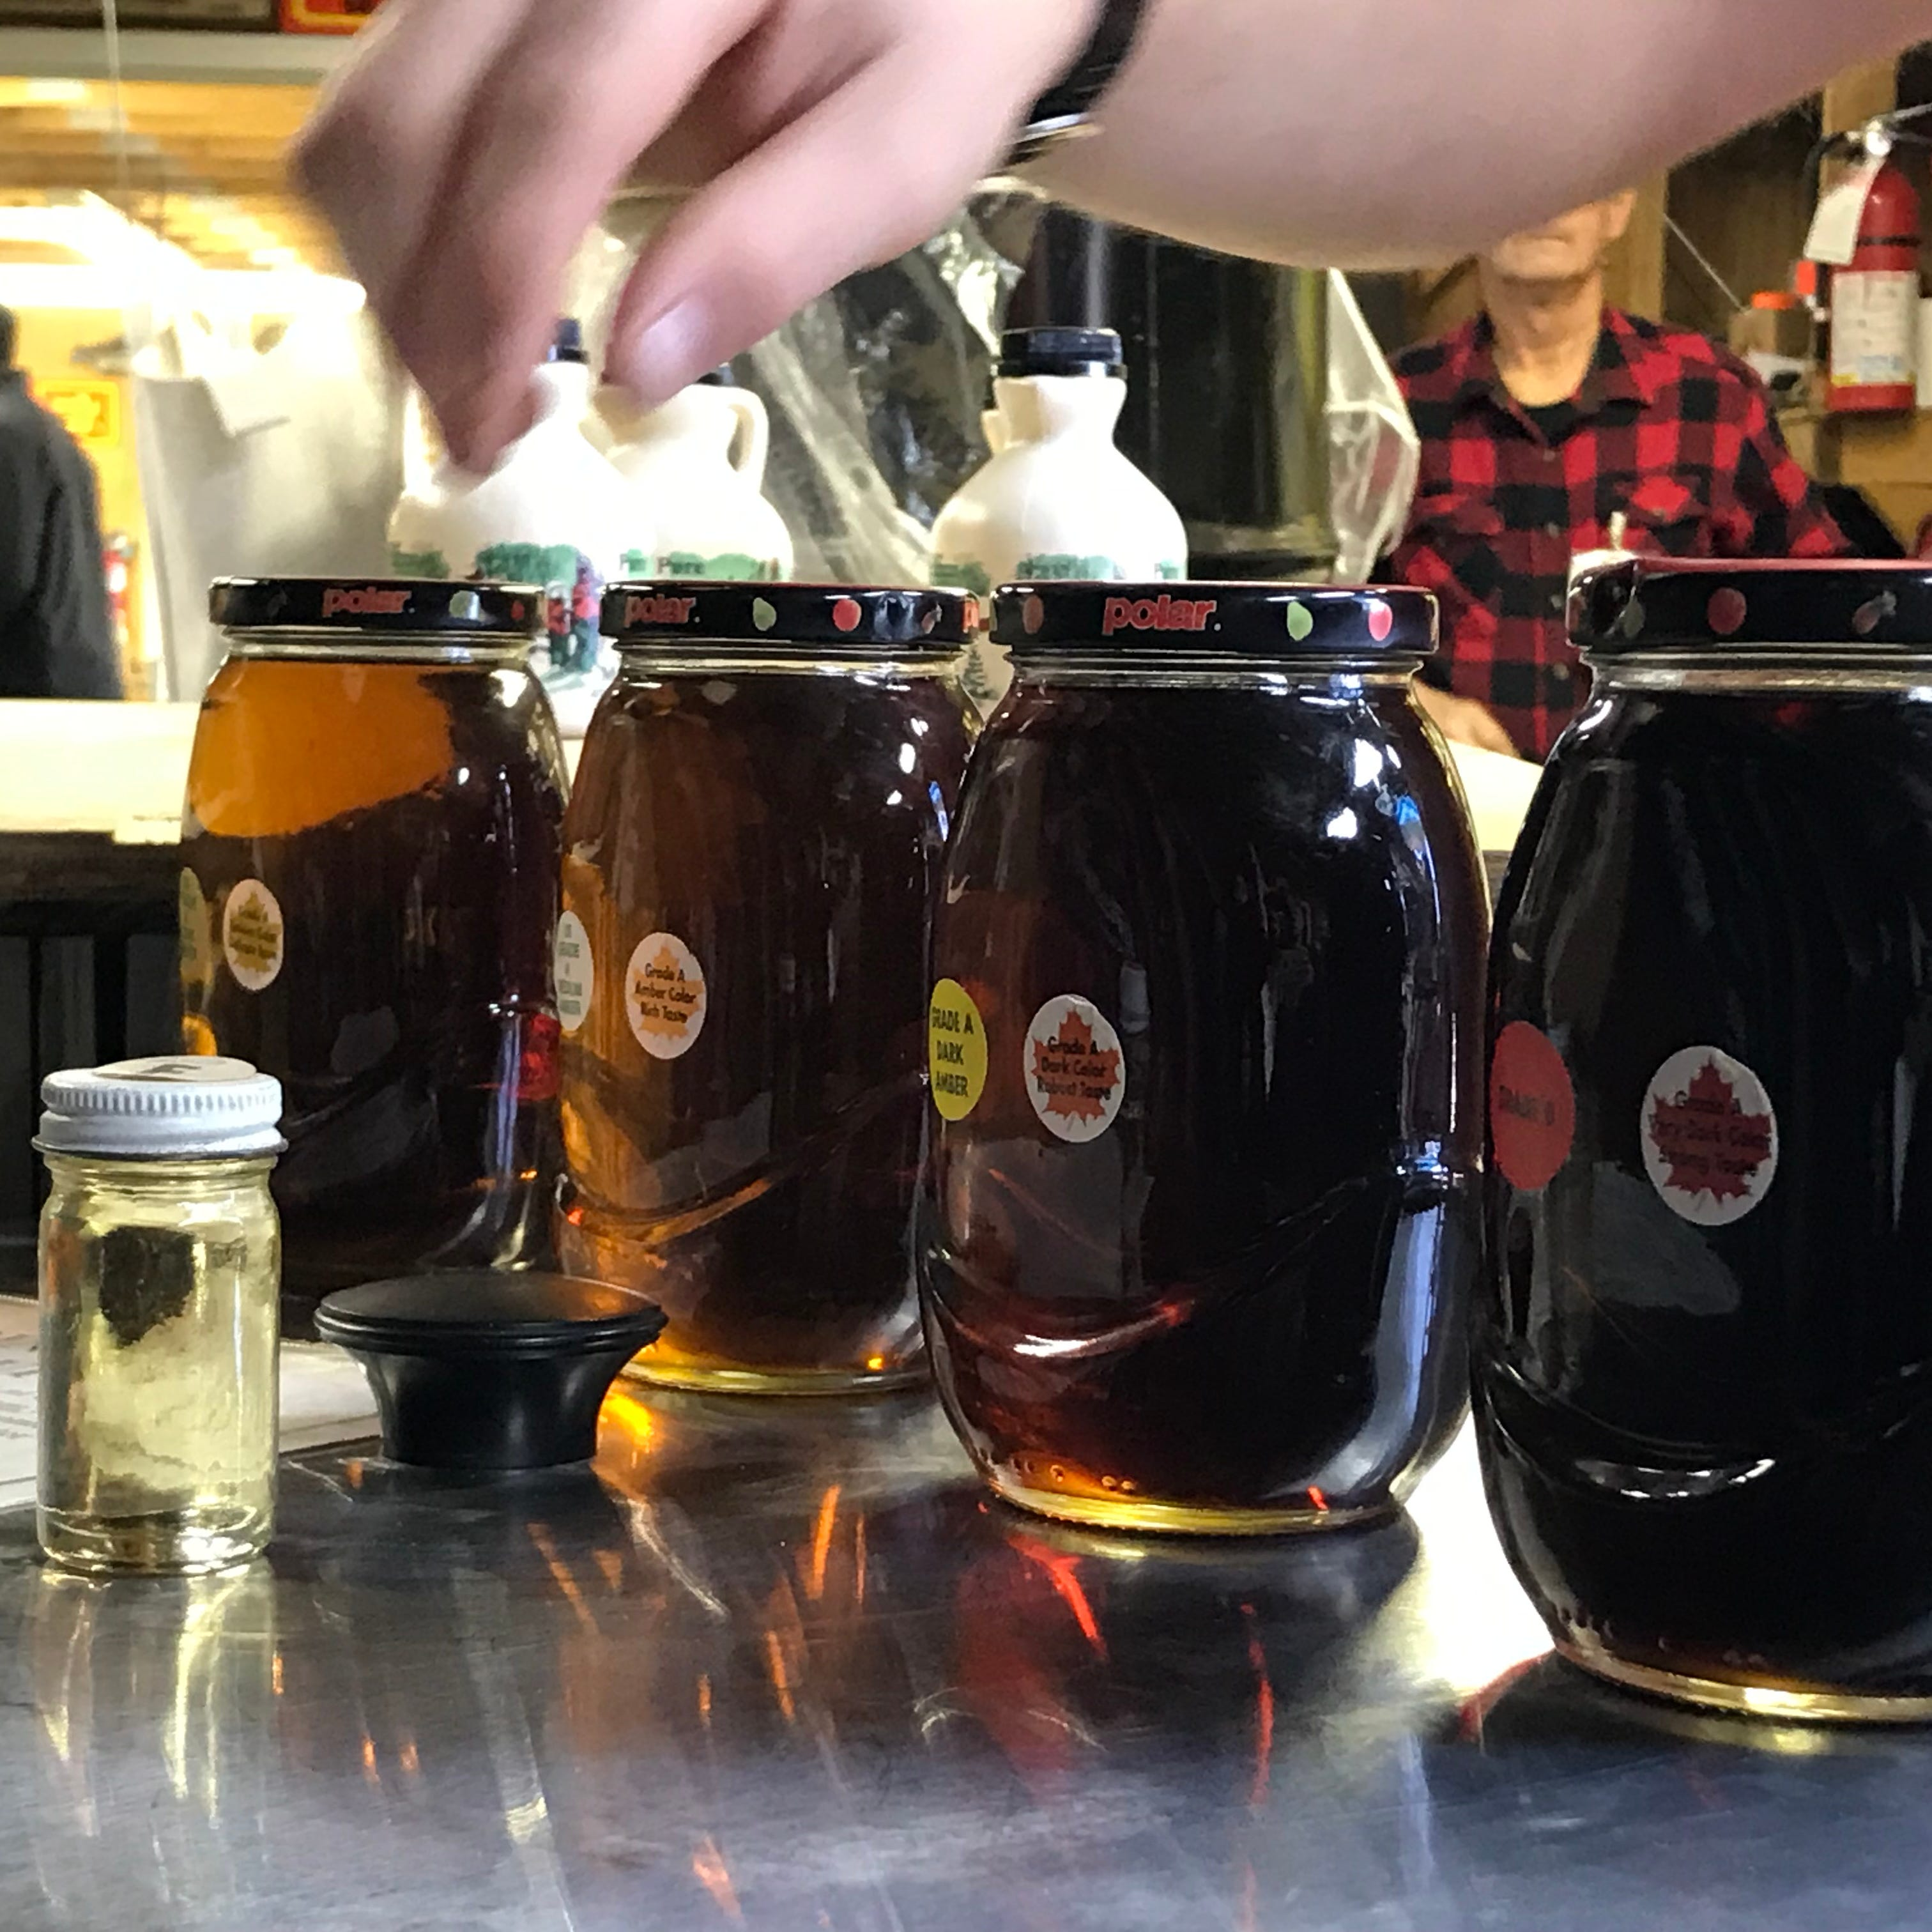 Pancakes, sugar camps and maple syrup at Virginia Highland Maple Festival